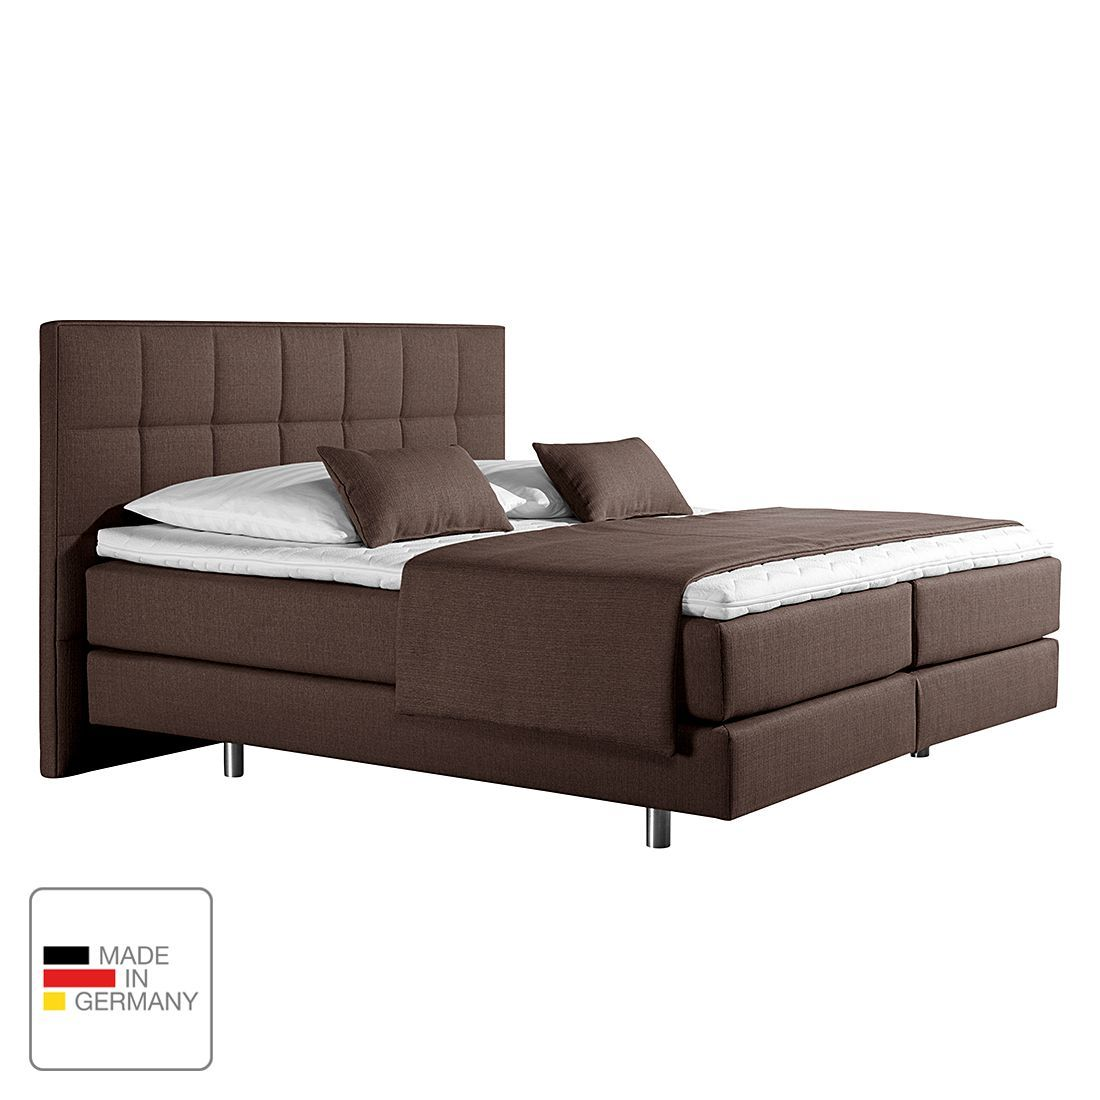 Excellent Pictures Buy Box Spring Beds Bed With Without Bed Box Style There S Nothing Better When Compared To A Cleve In 2020 Bed Box Spring Bed Best Murphy Bed